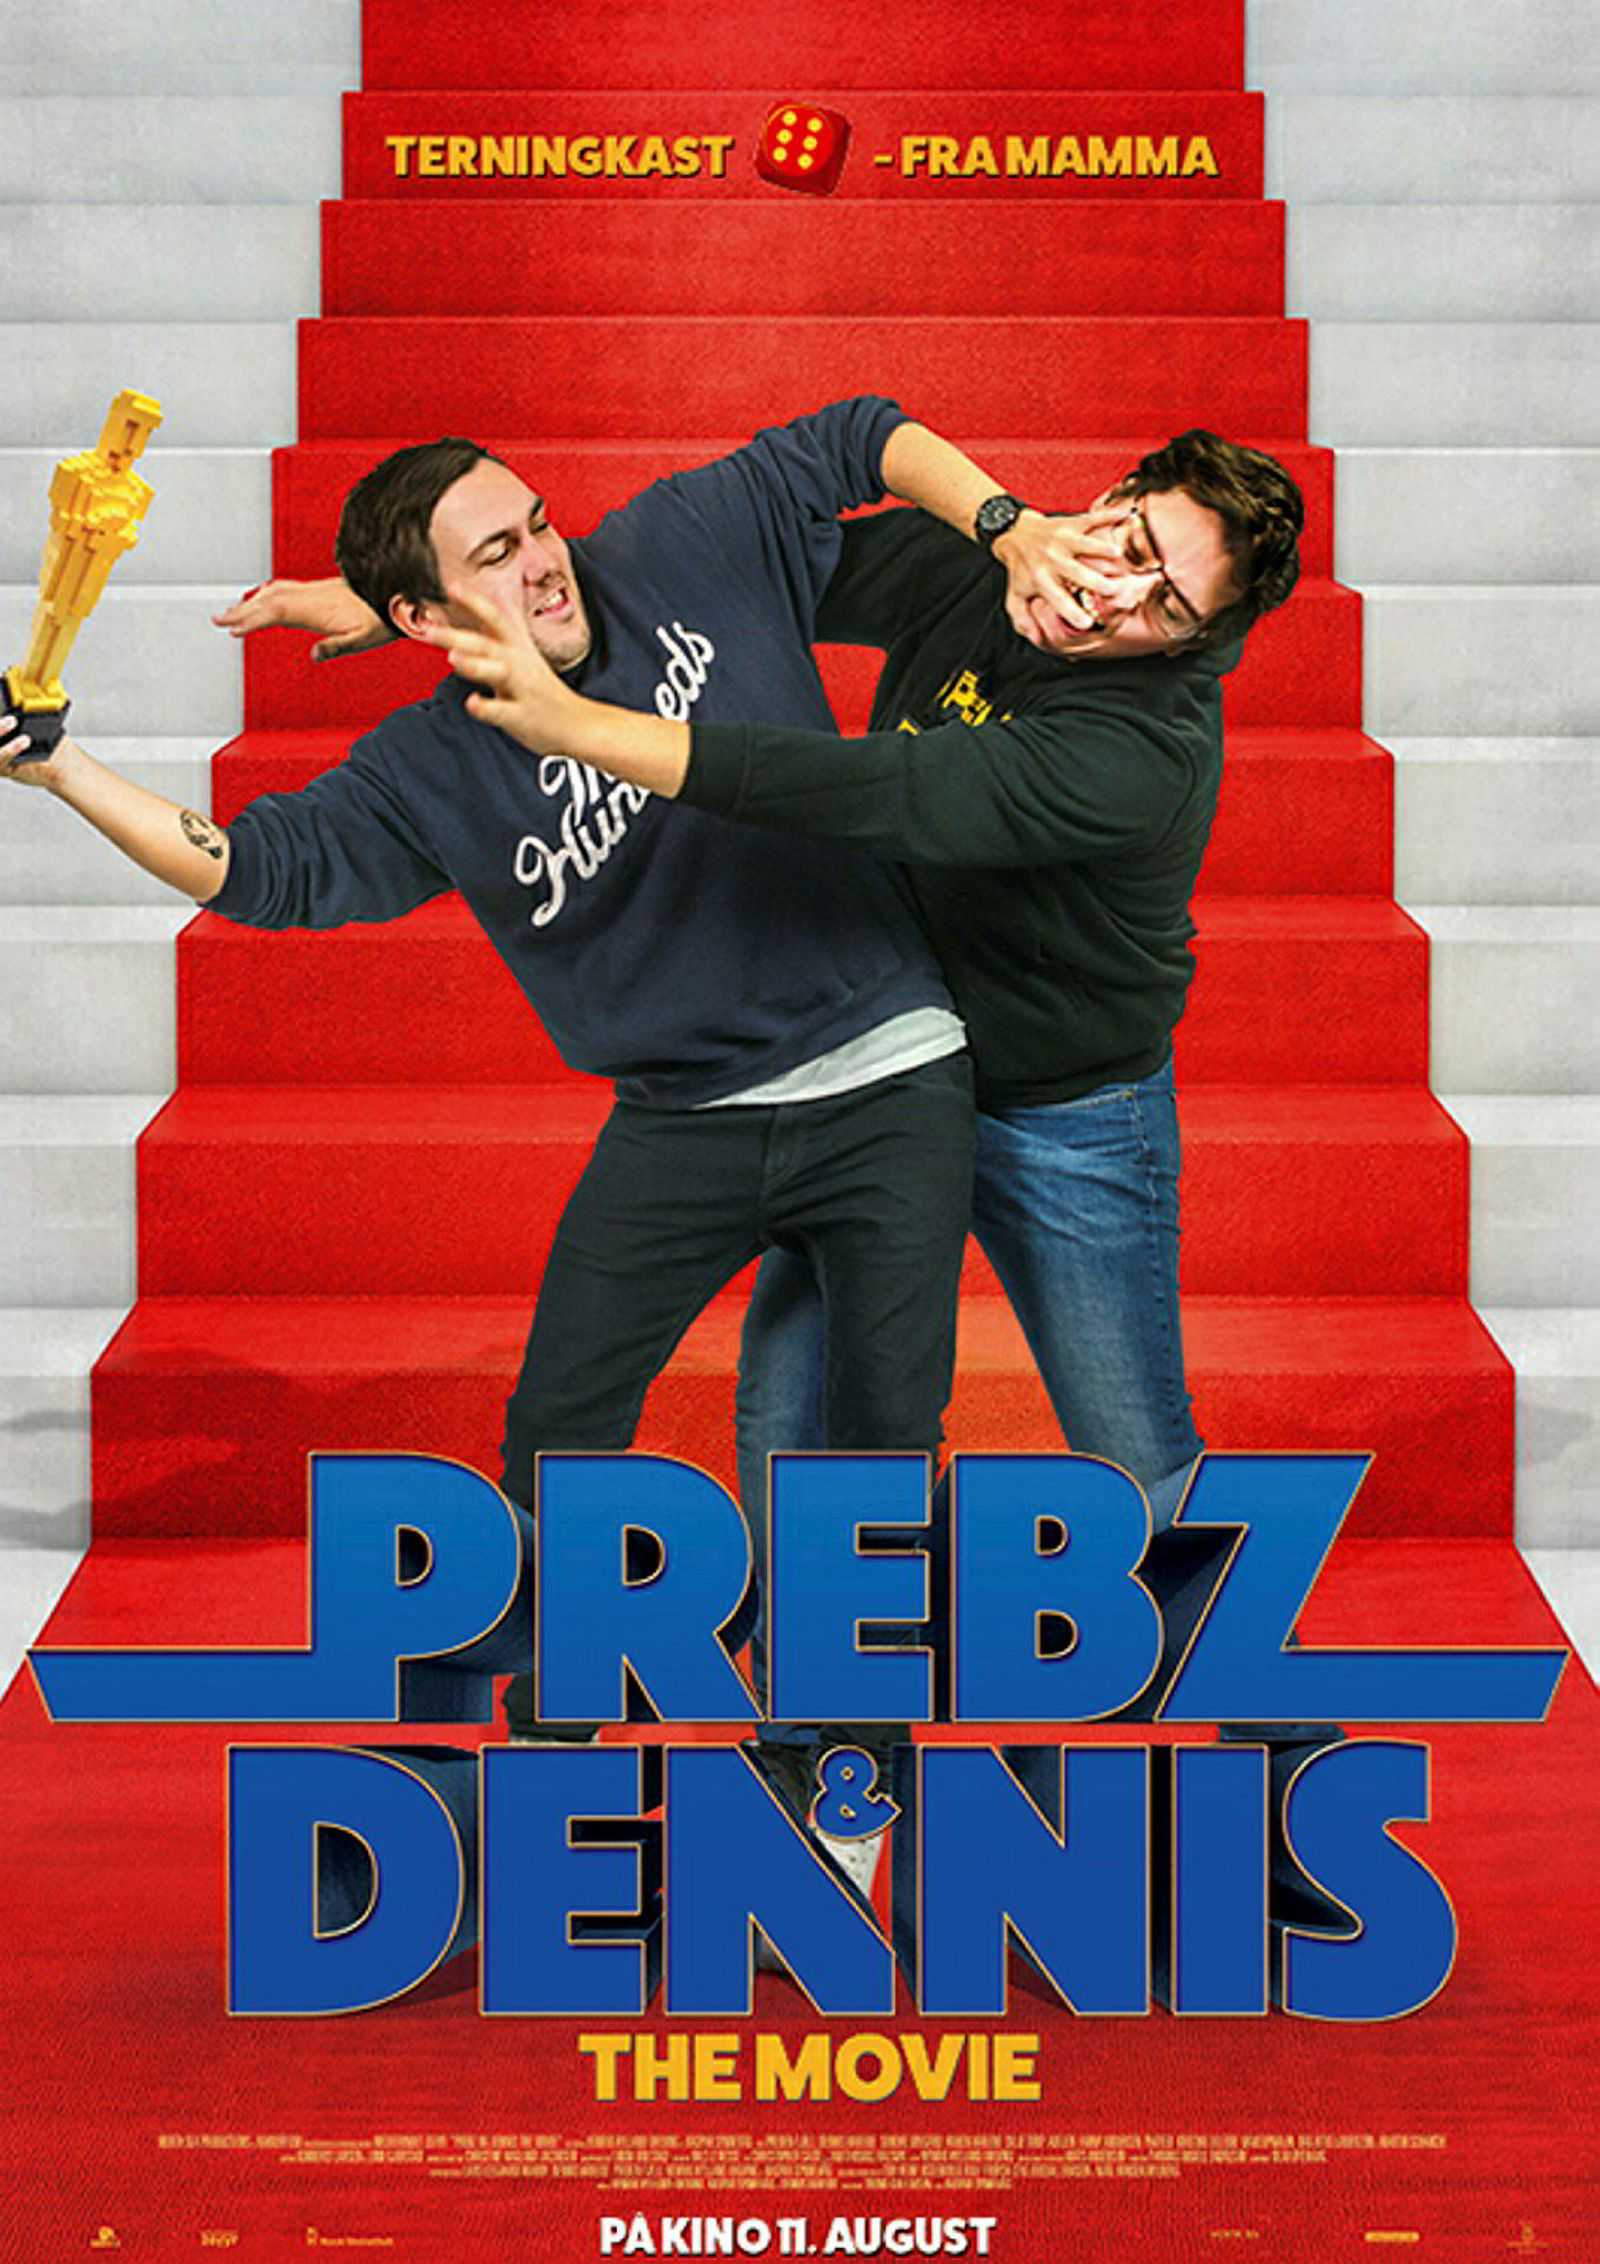 Prebz og Dennis: The Movie.